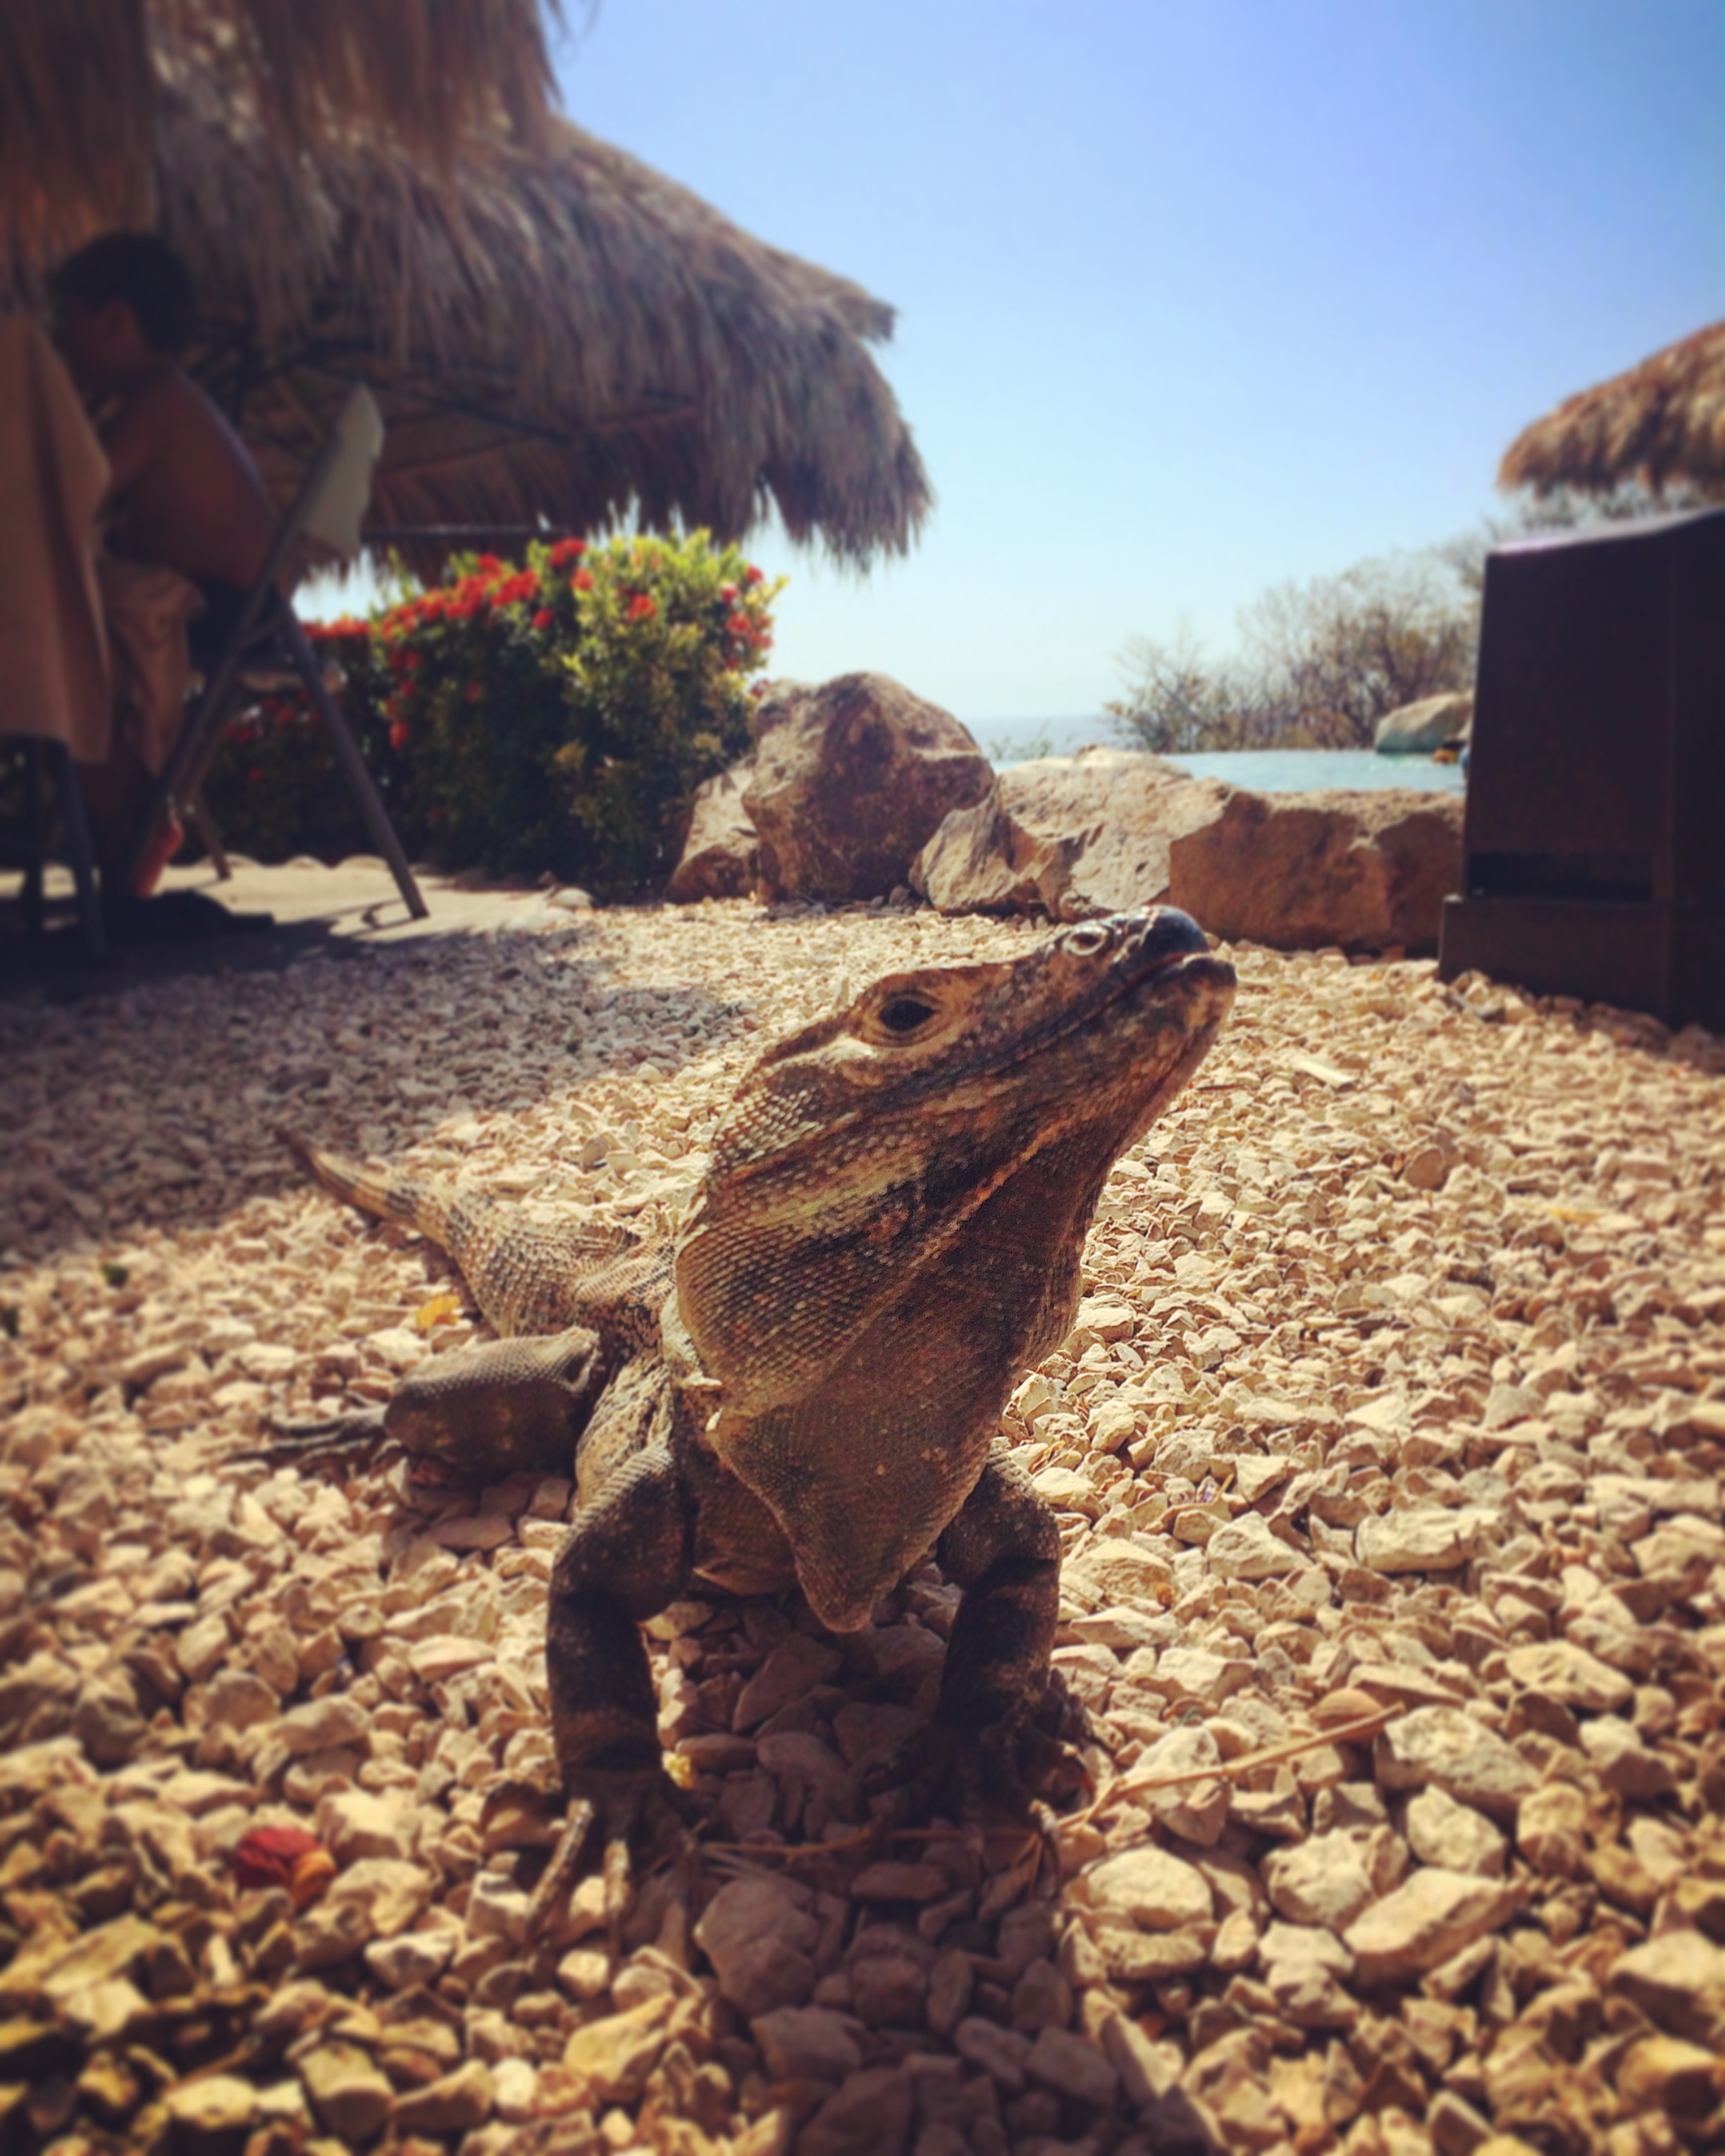 A patient iguana thinks I'm going to feed him eventually